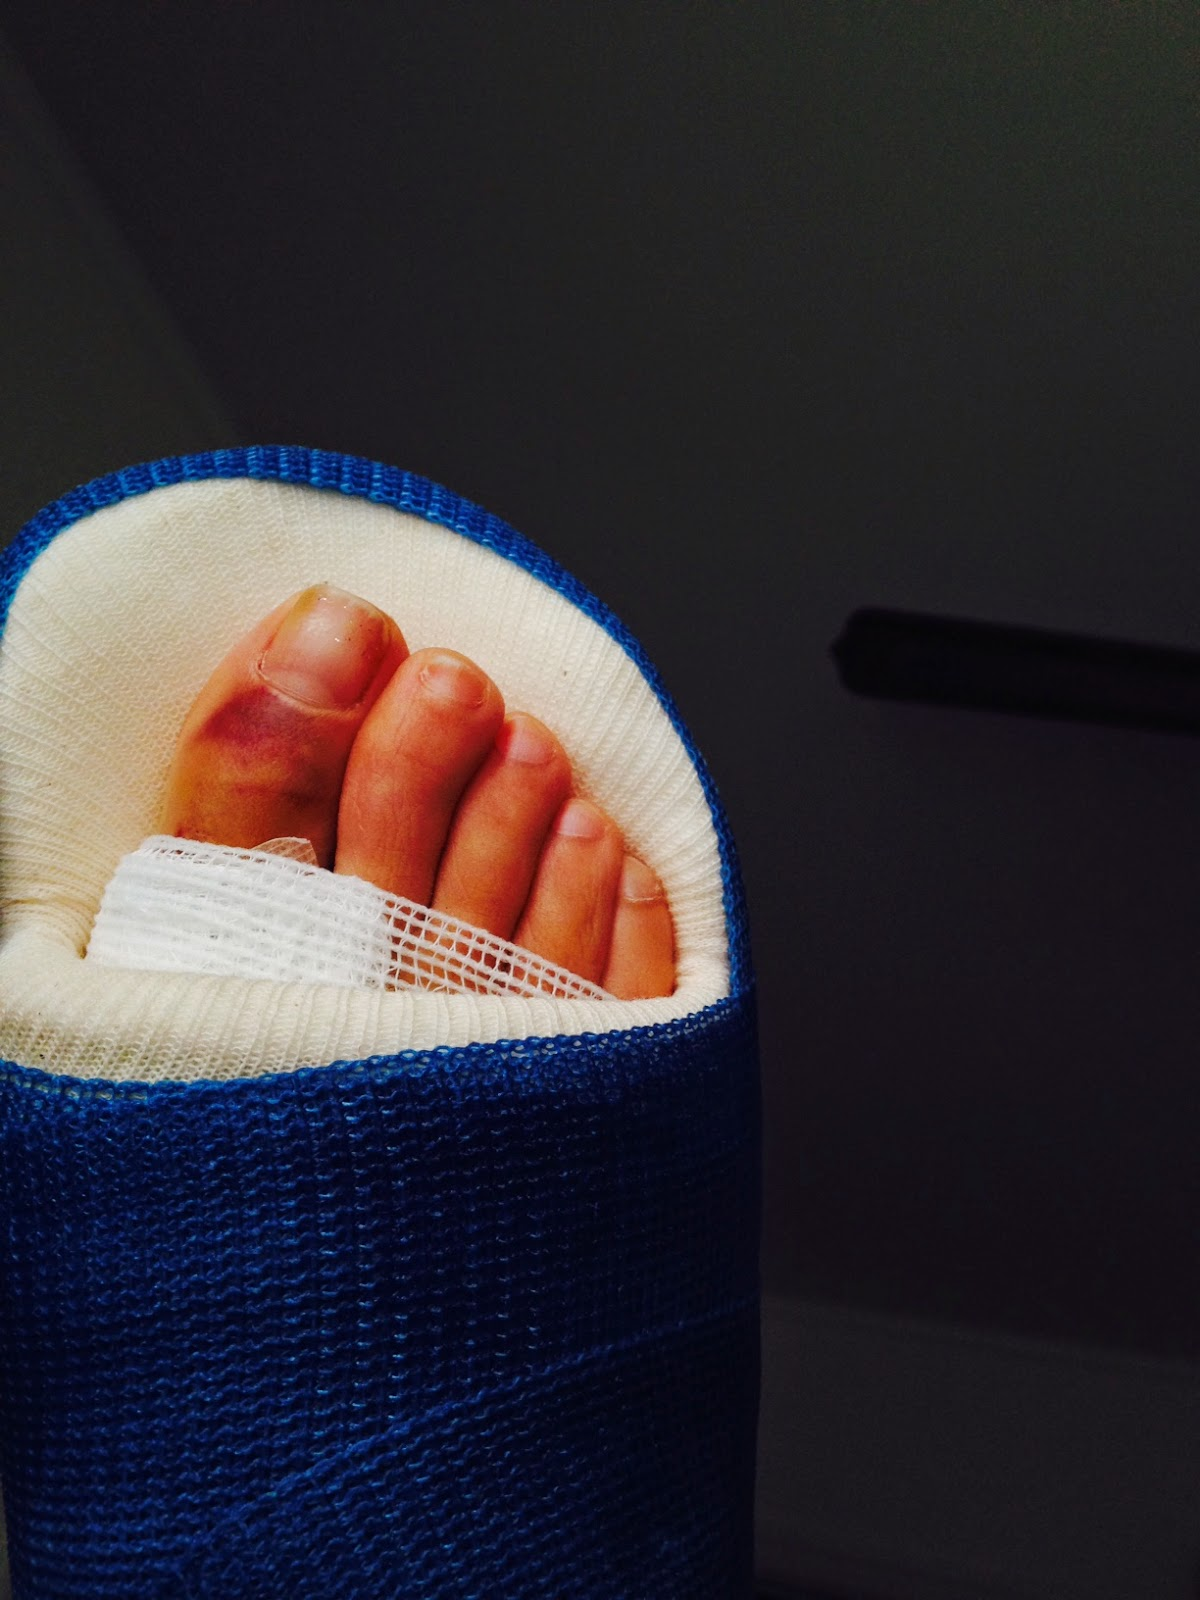 The Bloomin' Bunion: Bunion Surgery & Recovery Blog: April ...